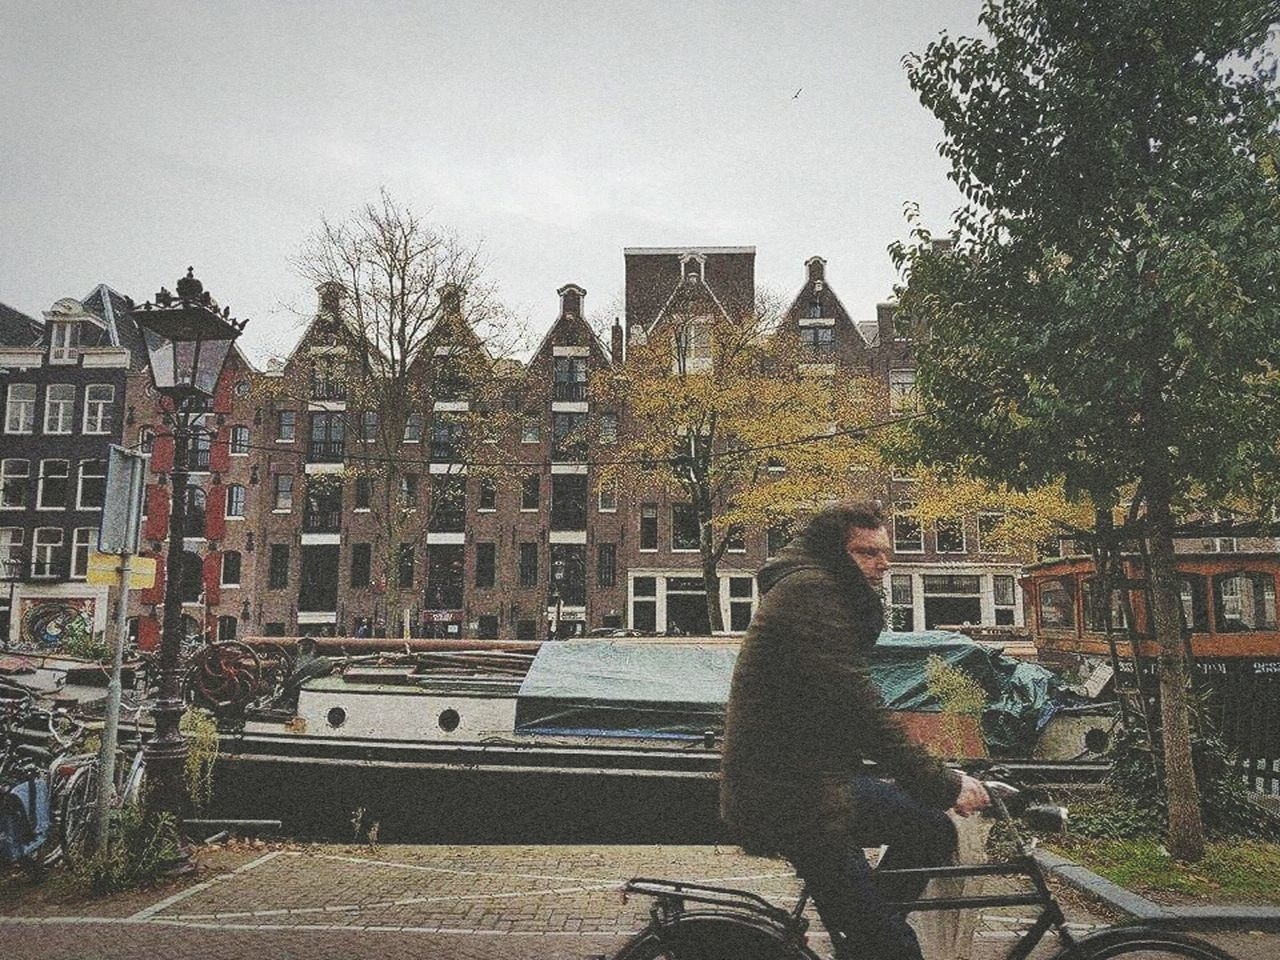 Amsterdam on film. Built Structure Building Exterior Architecture Travel Destinations Full Length Rear View City City Break Adults Only One Person People Outdoors Tree Only Men One Man Only Day Adult Amsterdam Traveling Bikesaroundtheworld Bikes